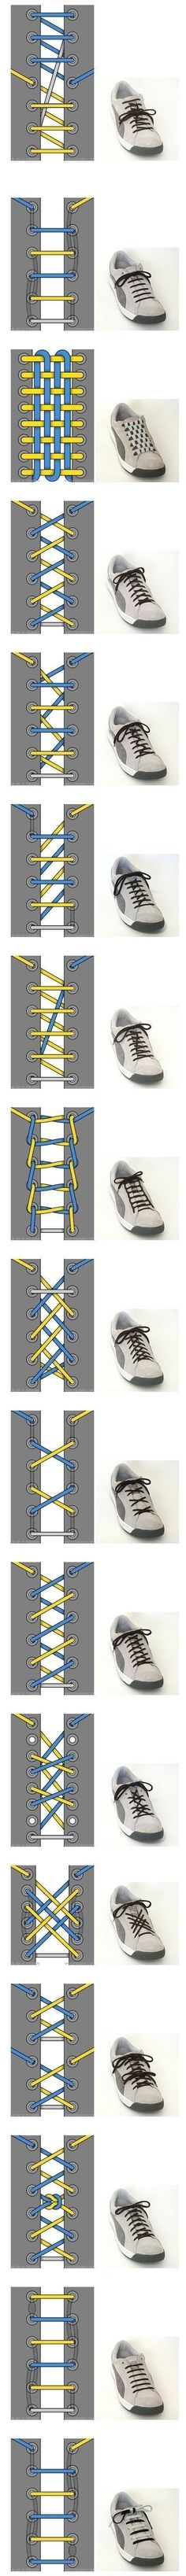 Cool Ways To Tie Your Shoe Laces  I like it